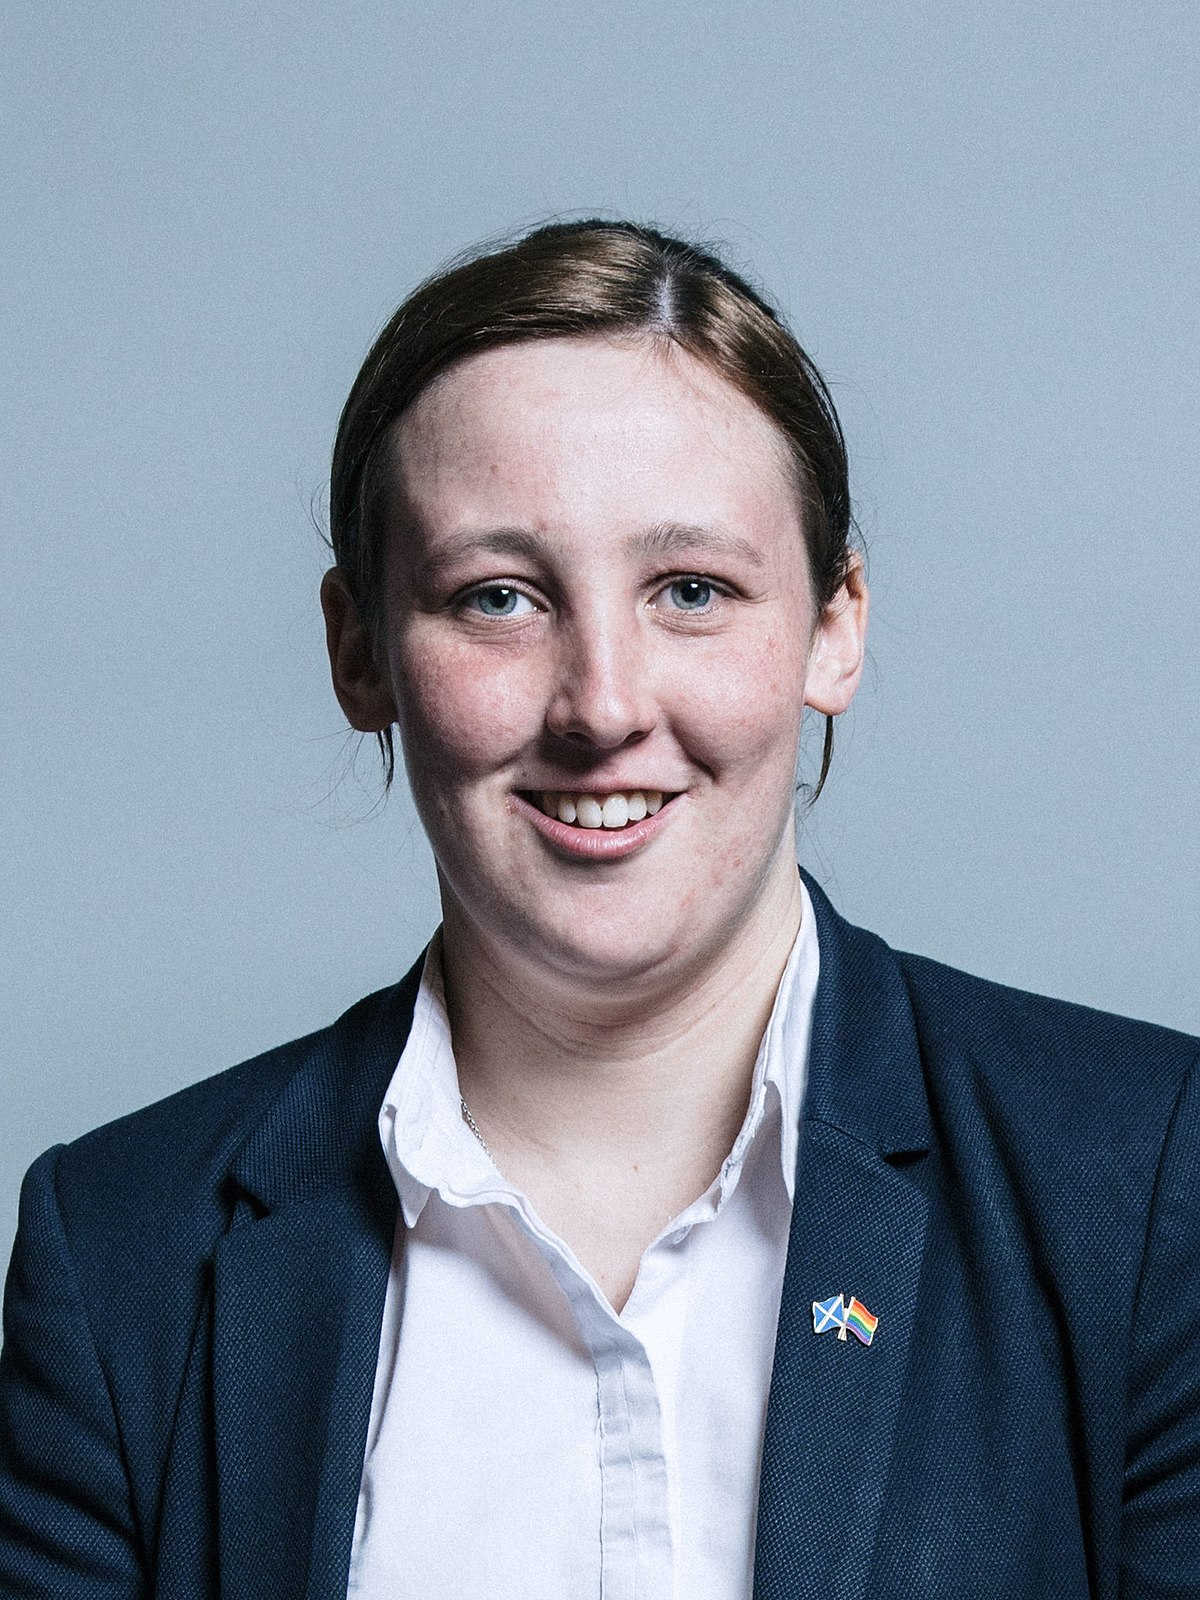 mhairi black wikipedia